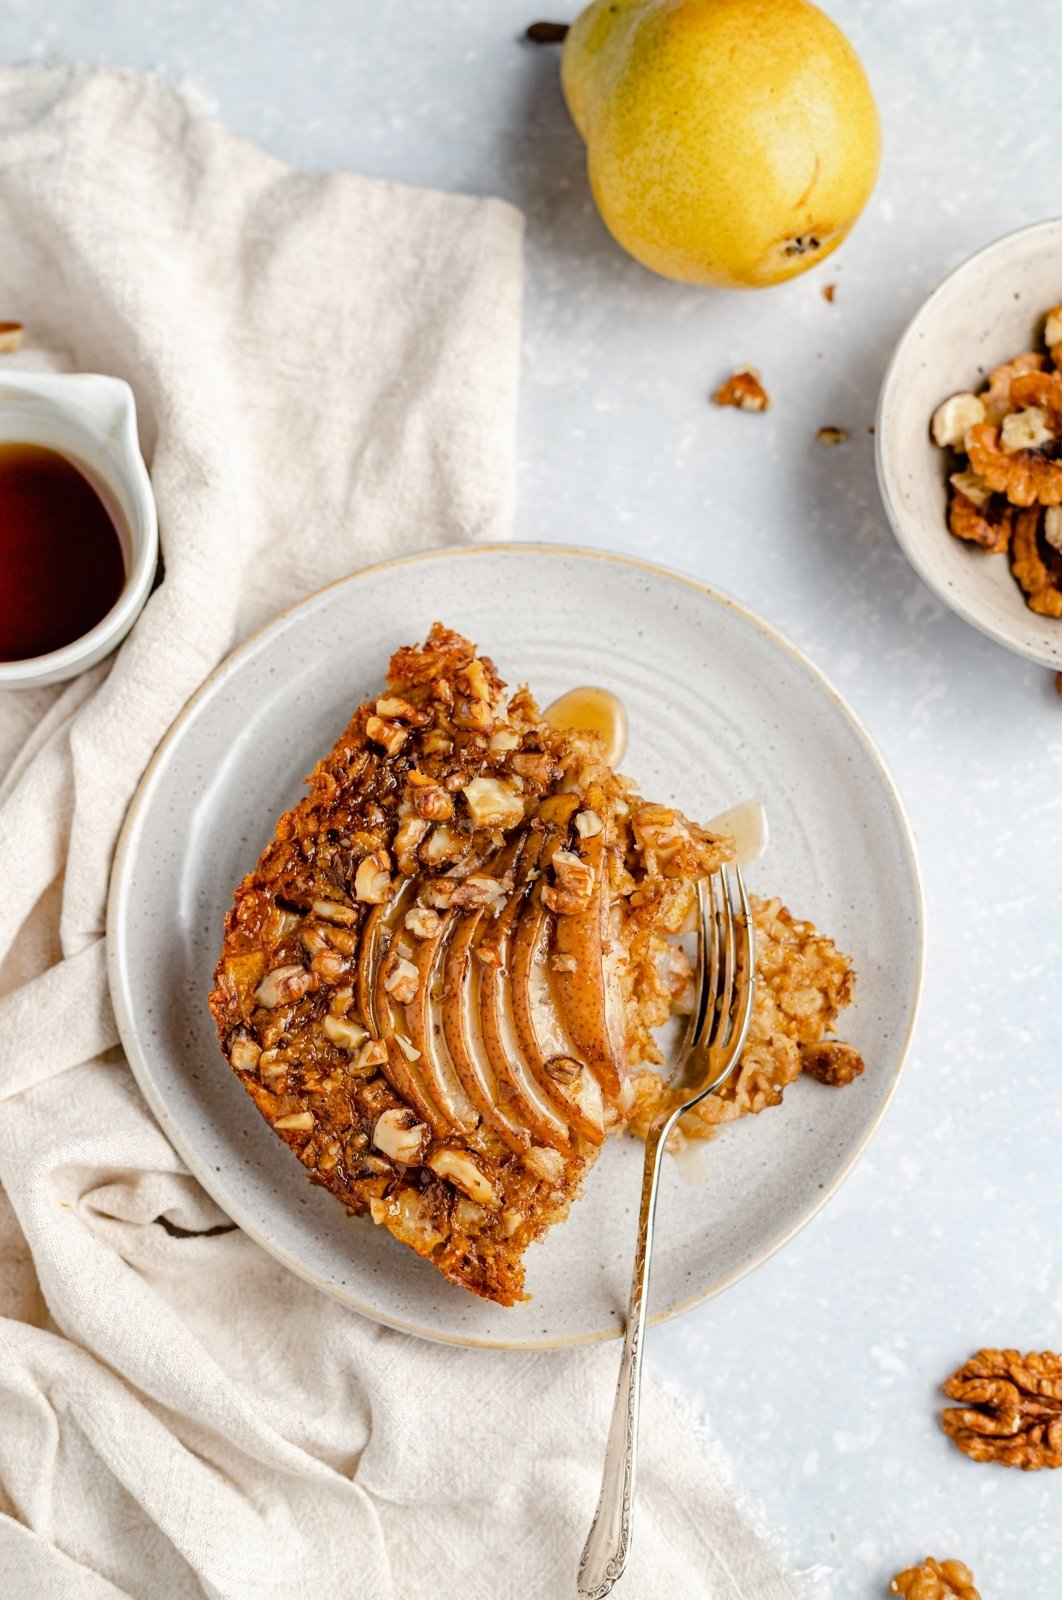 slice of pear baked oatmeal on a plate